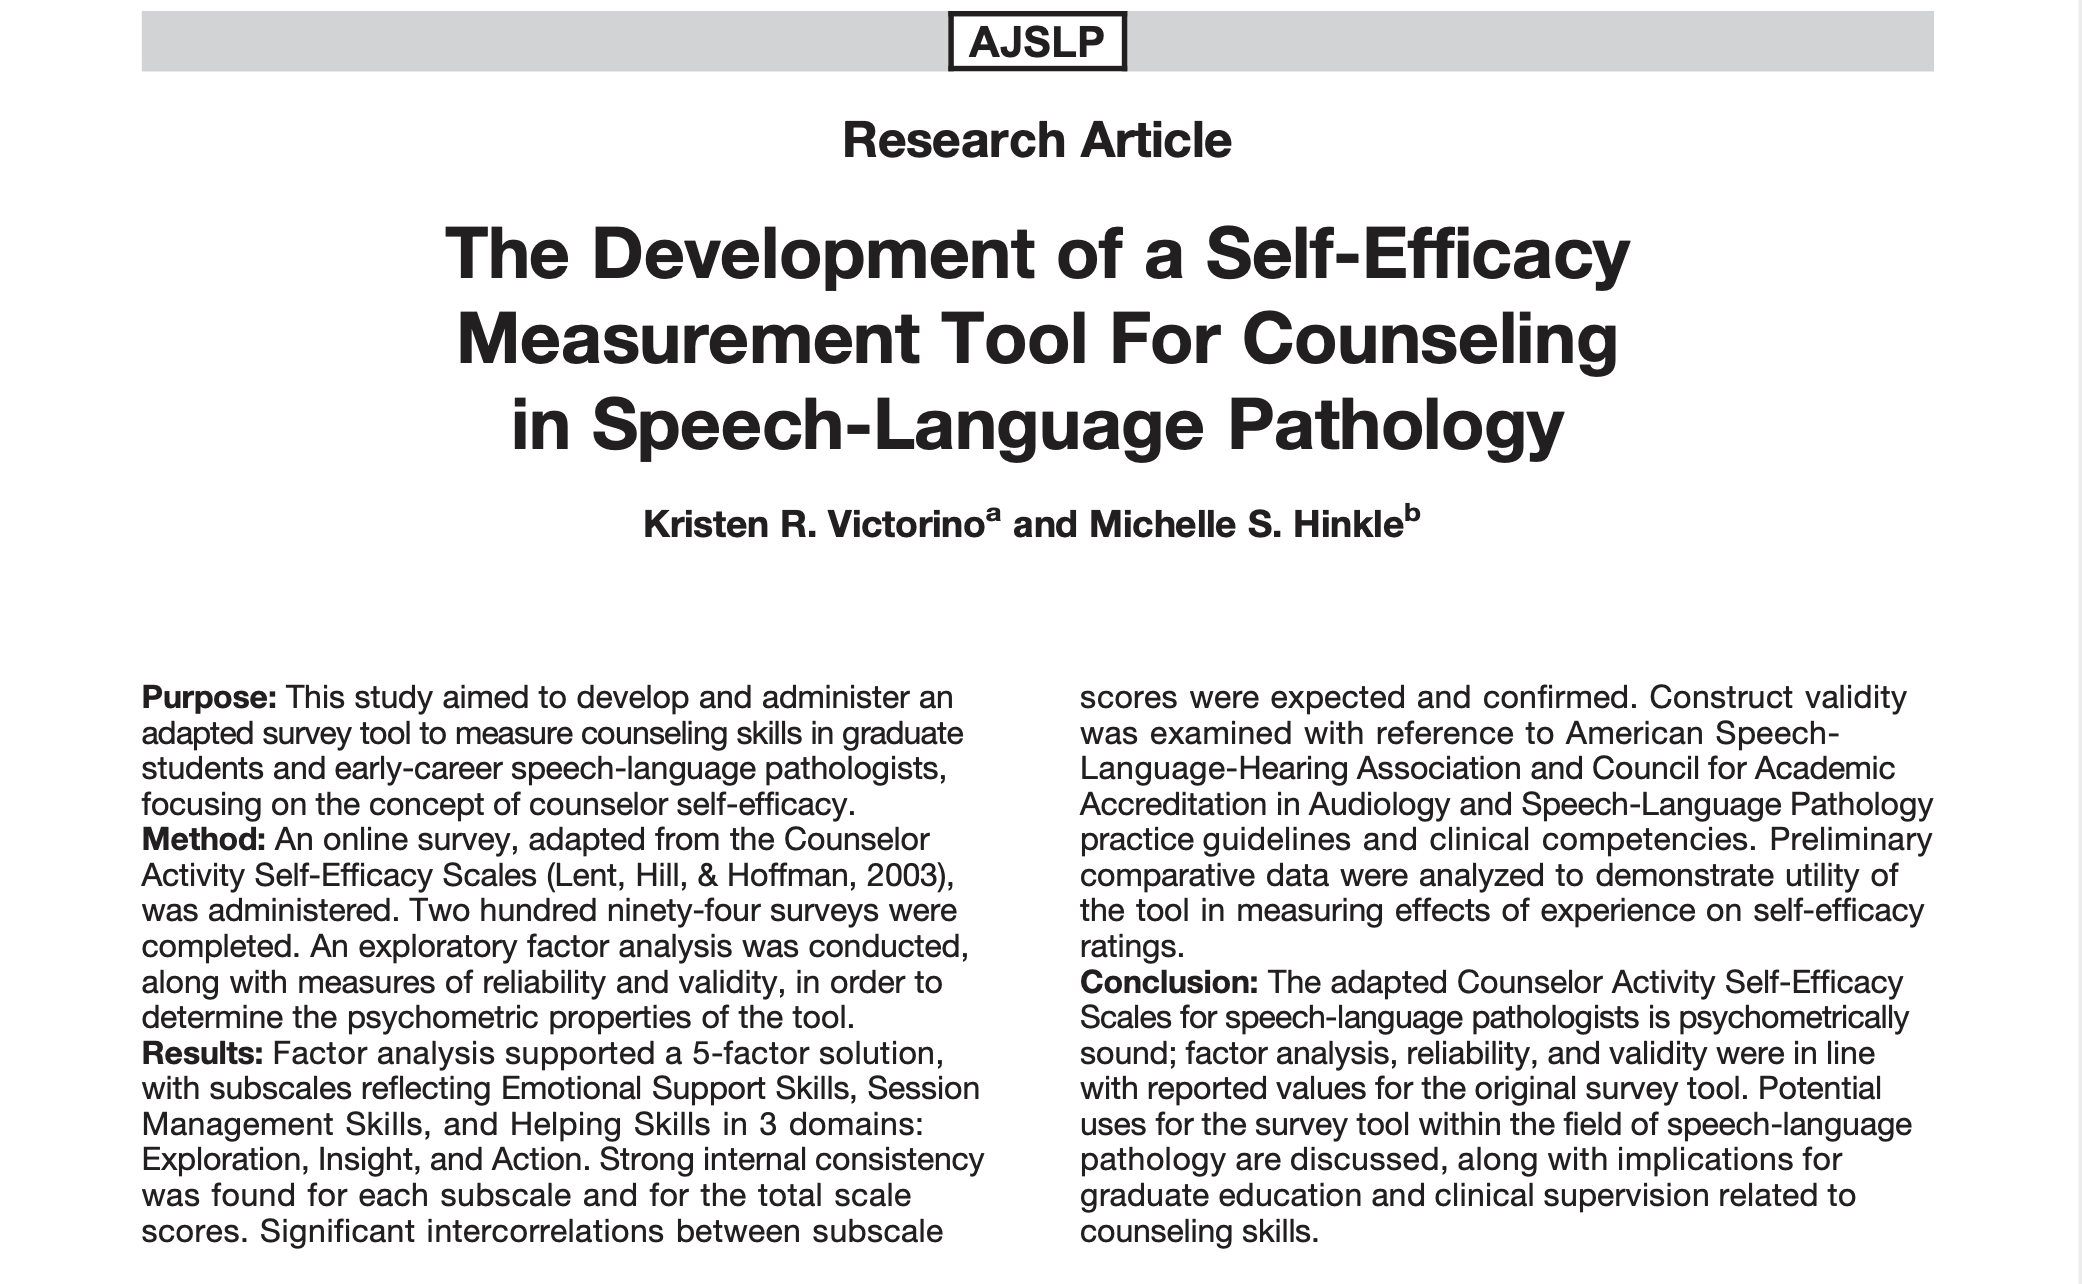 Image of the top portion of a research journal article. The article is Victorino, K. R. & Hinkle, M. S. (2019). The development of a self-efficacy measurement tool for counseling in speech-language pathology. The image shows information on the source type, article title, authors, and article summary information.